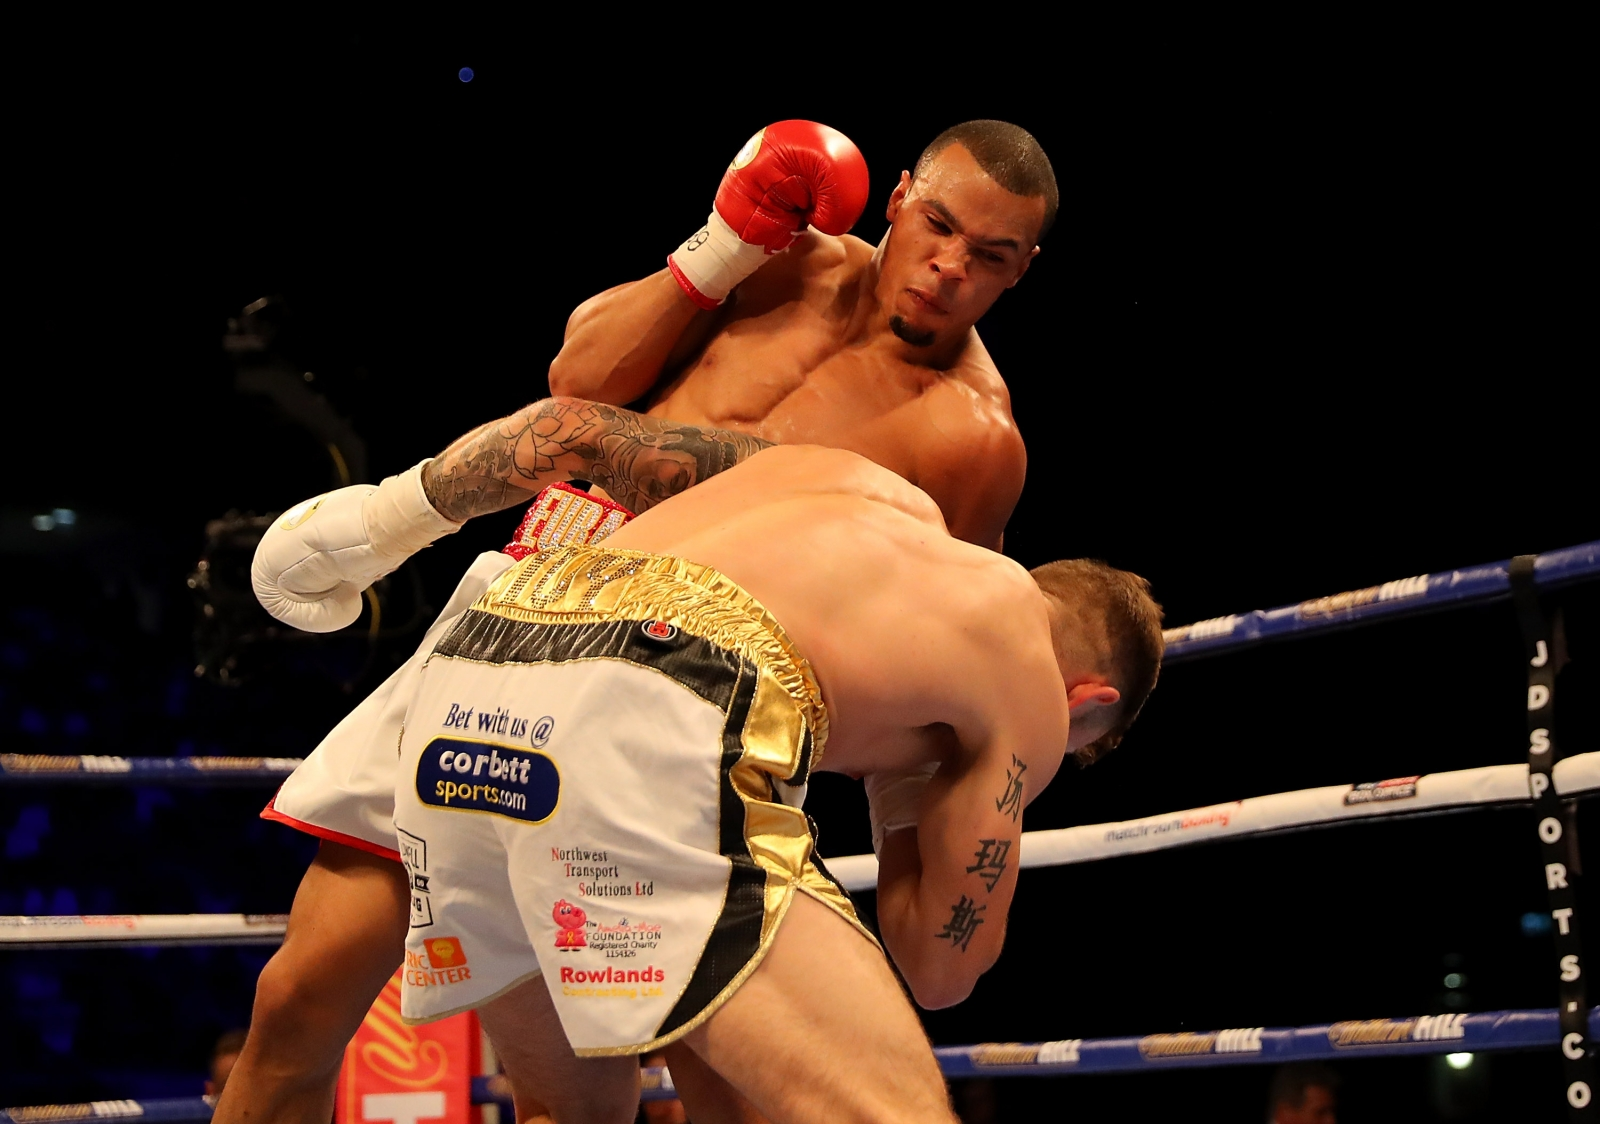 Chris Eubank Jr vs Tom Doran